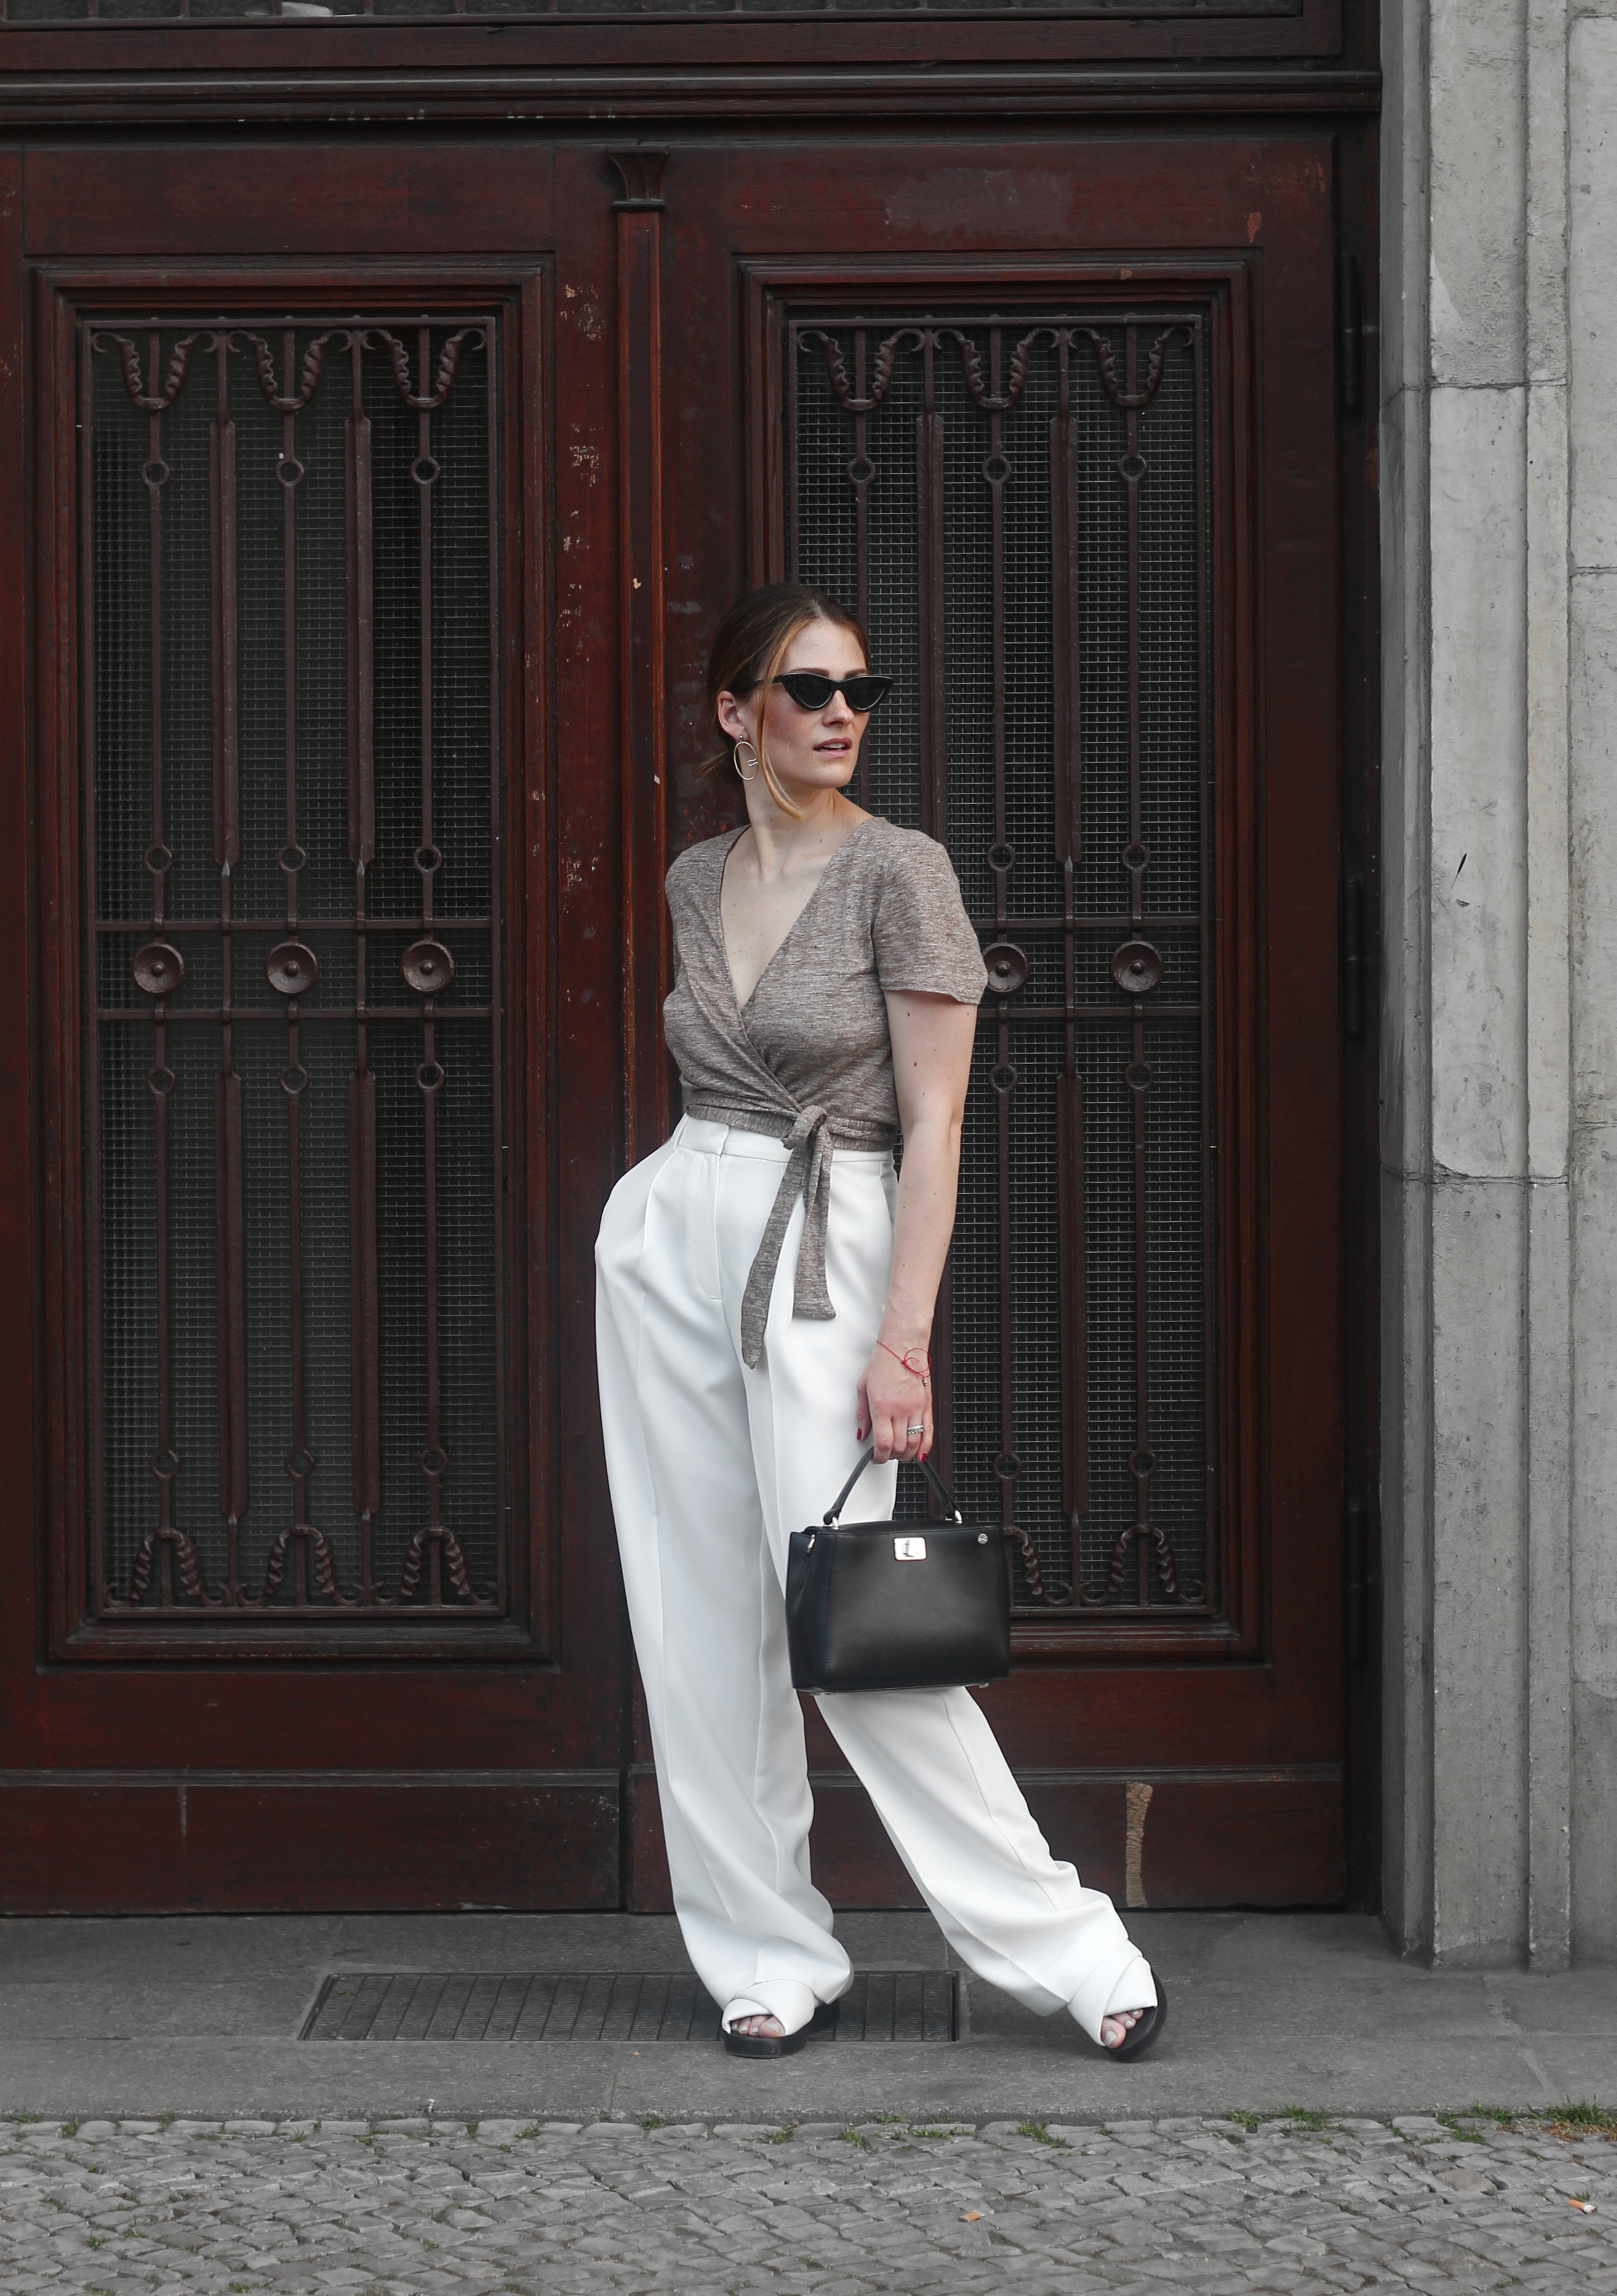 annaporter-white-trousers-mango-croppedtop-summer-look